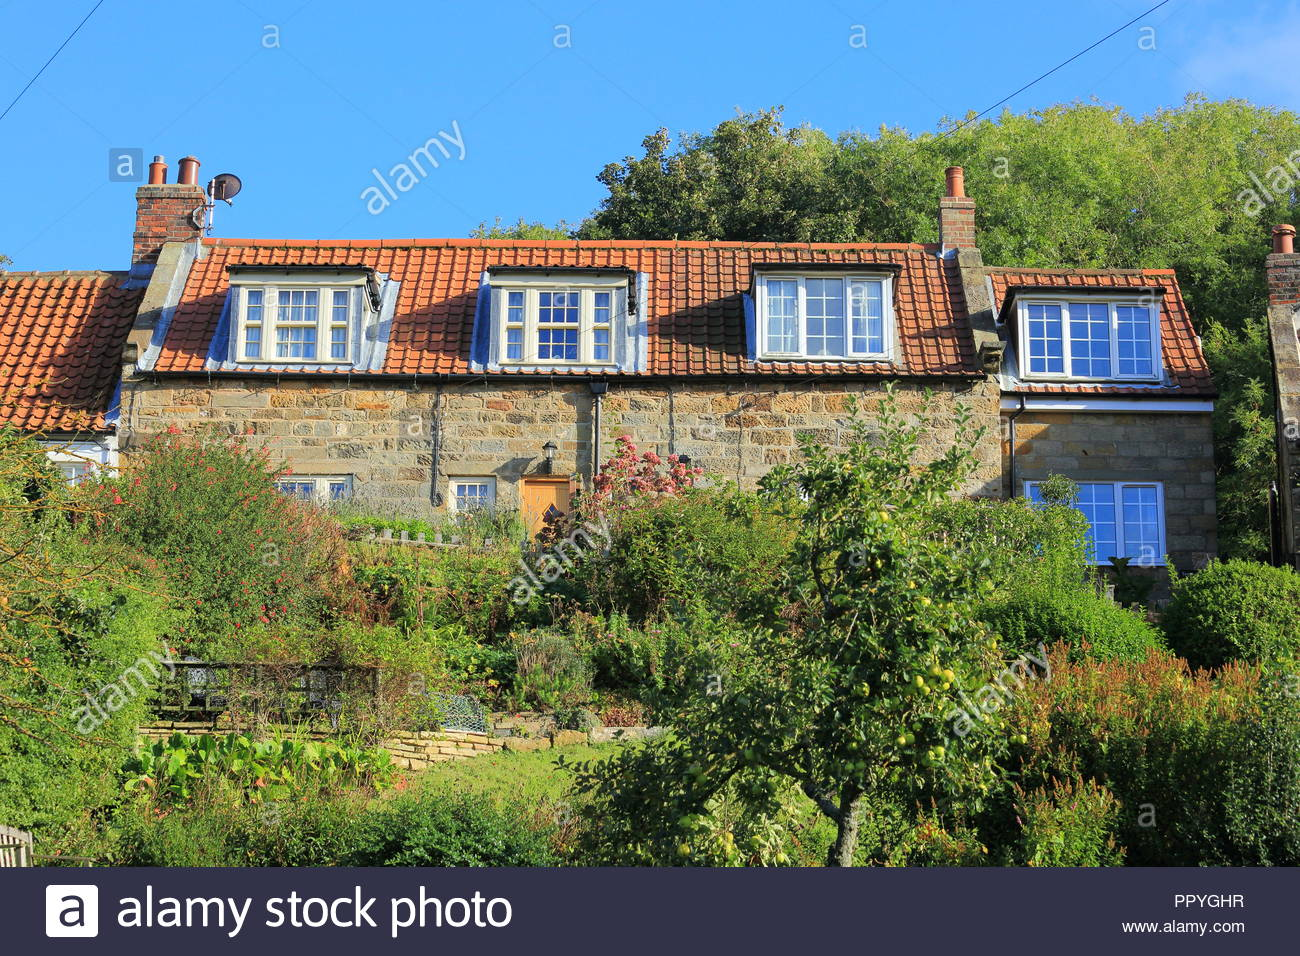 Pleasing Beautiful Self Catering Cottages Located At Sandsend Whitby Home Interior And Landscaping Oversignezvosmurscom